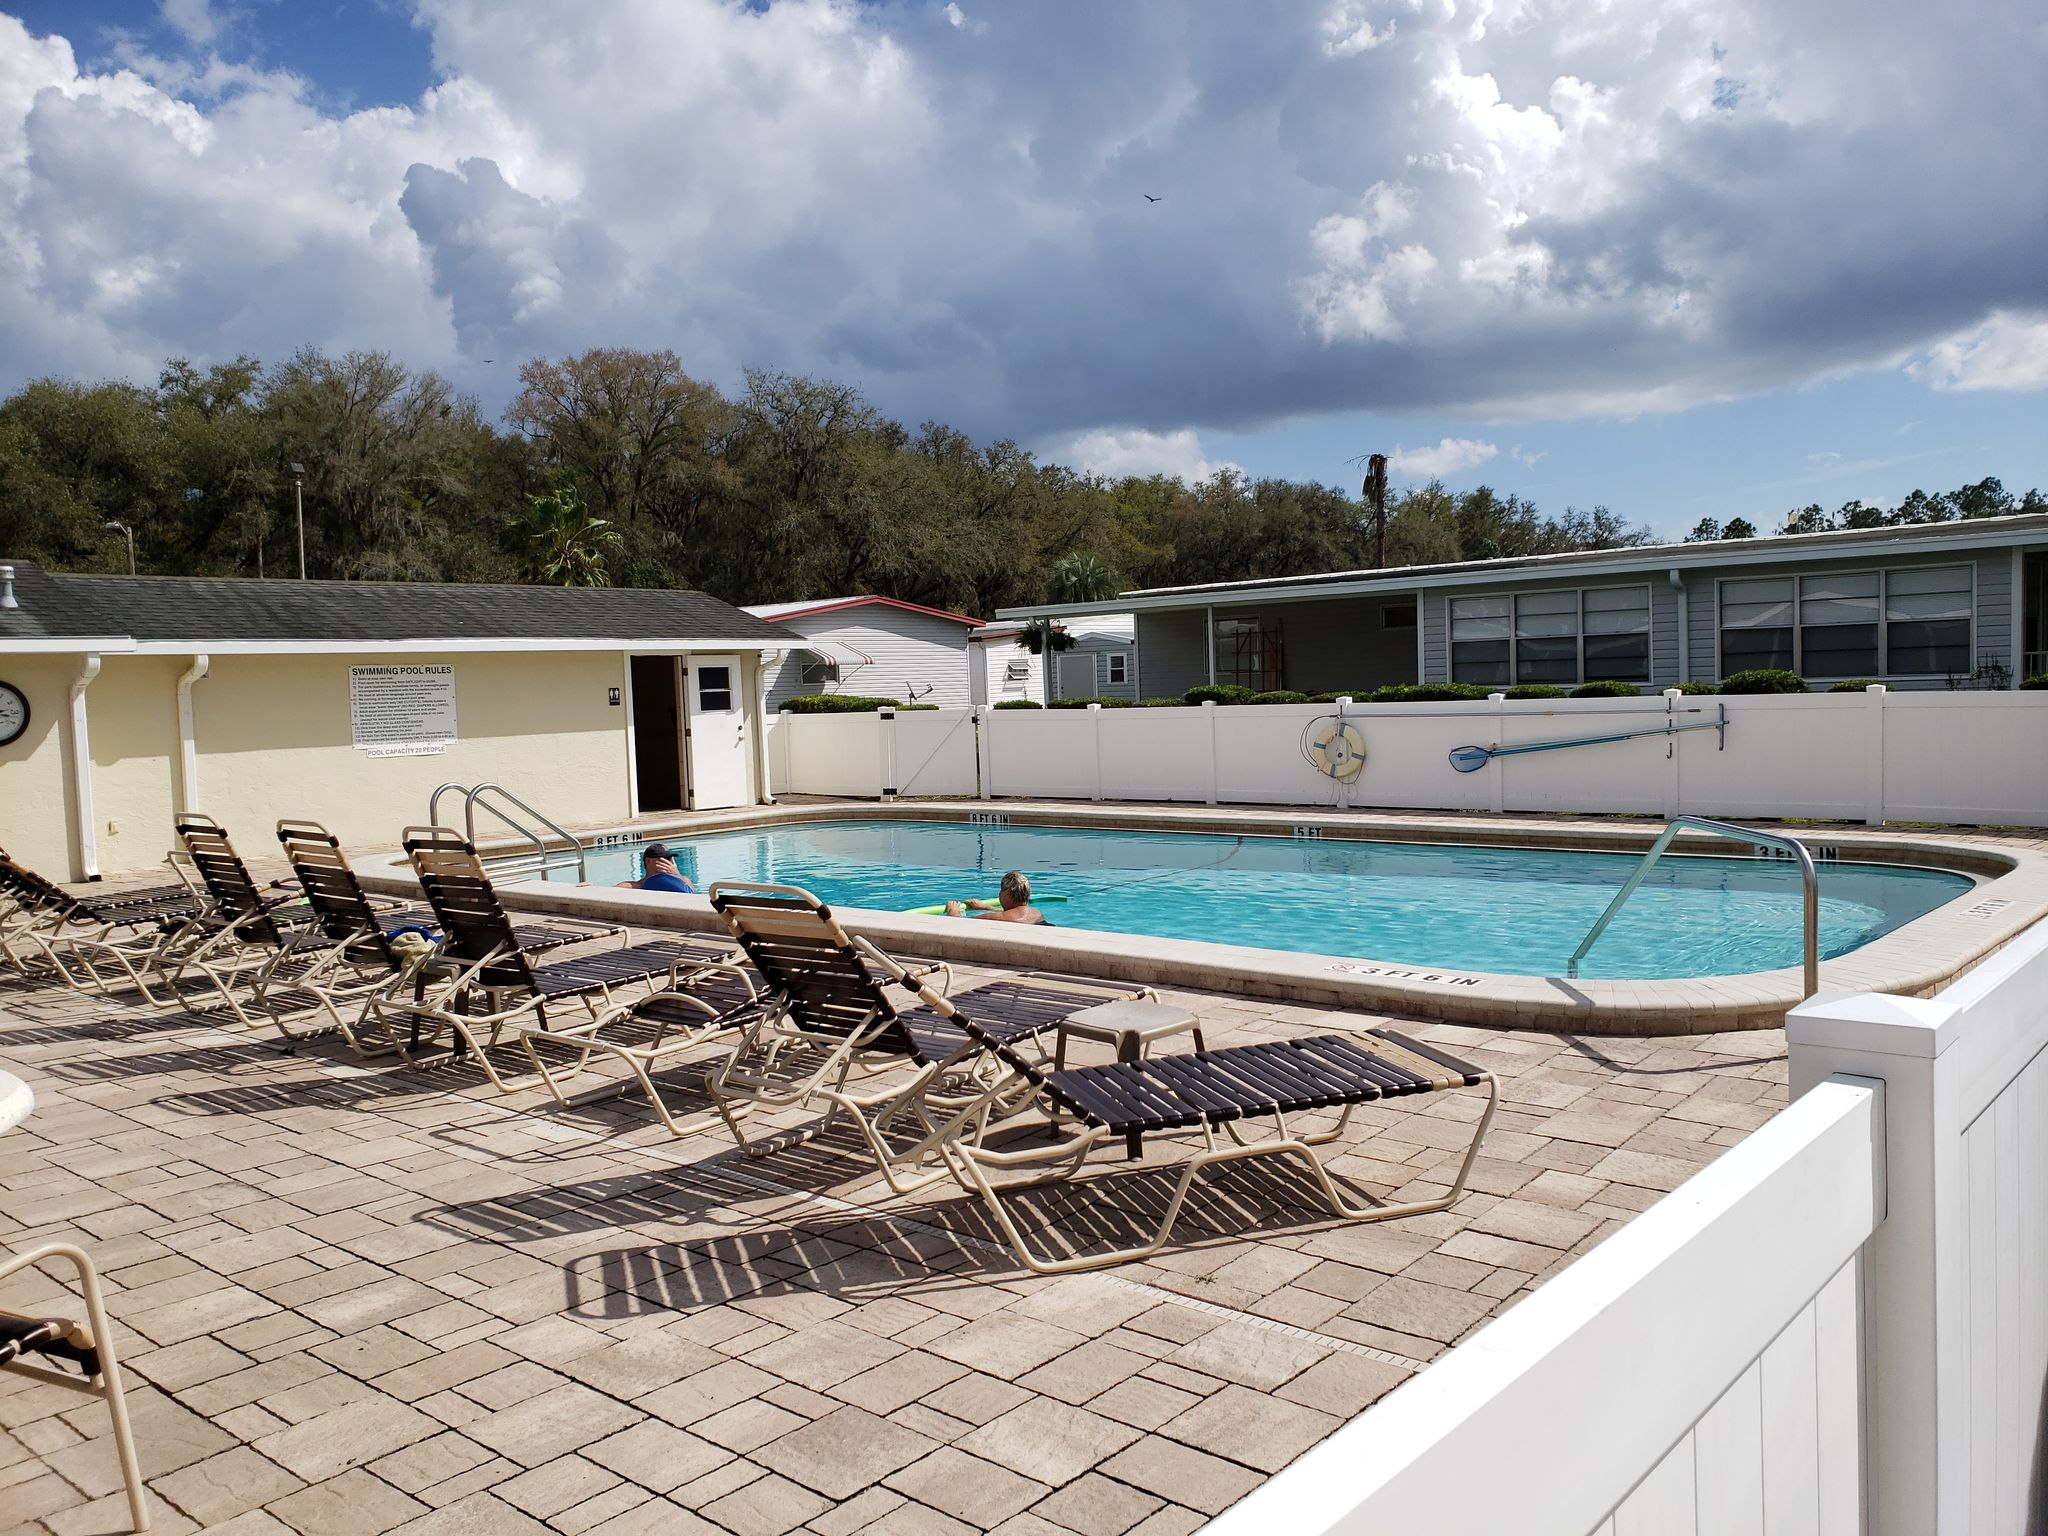 4842 Sandpiper Ln, Zephyrhills, FL 33541 - 2 Bed, 2 Bath Mobile/Manufactured on clay county florida zip code map, zephyrhills fl activities, dallas tx zip code map, zephyrhills florida demographics, knoxville tn zip code map, orlando zip code map, zephyrhills florida mapquest, zephyrhills fl real estate, zephyrhills spring water, zephyrhills fl shopping centers, wesley chapel map, south florida zip code map, zephyrhills fl street map, indianapolis in zip code map, zephyrhills fl weather,